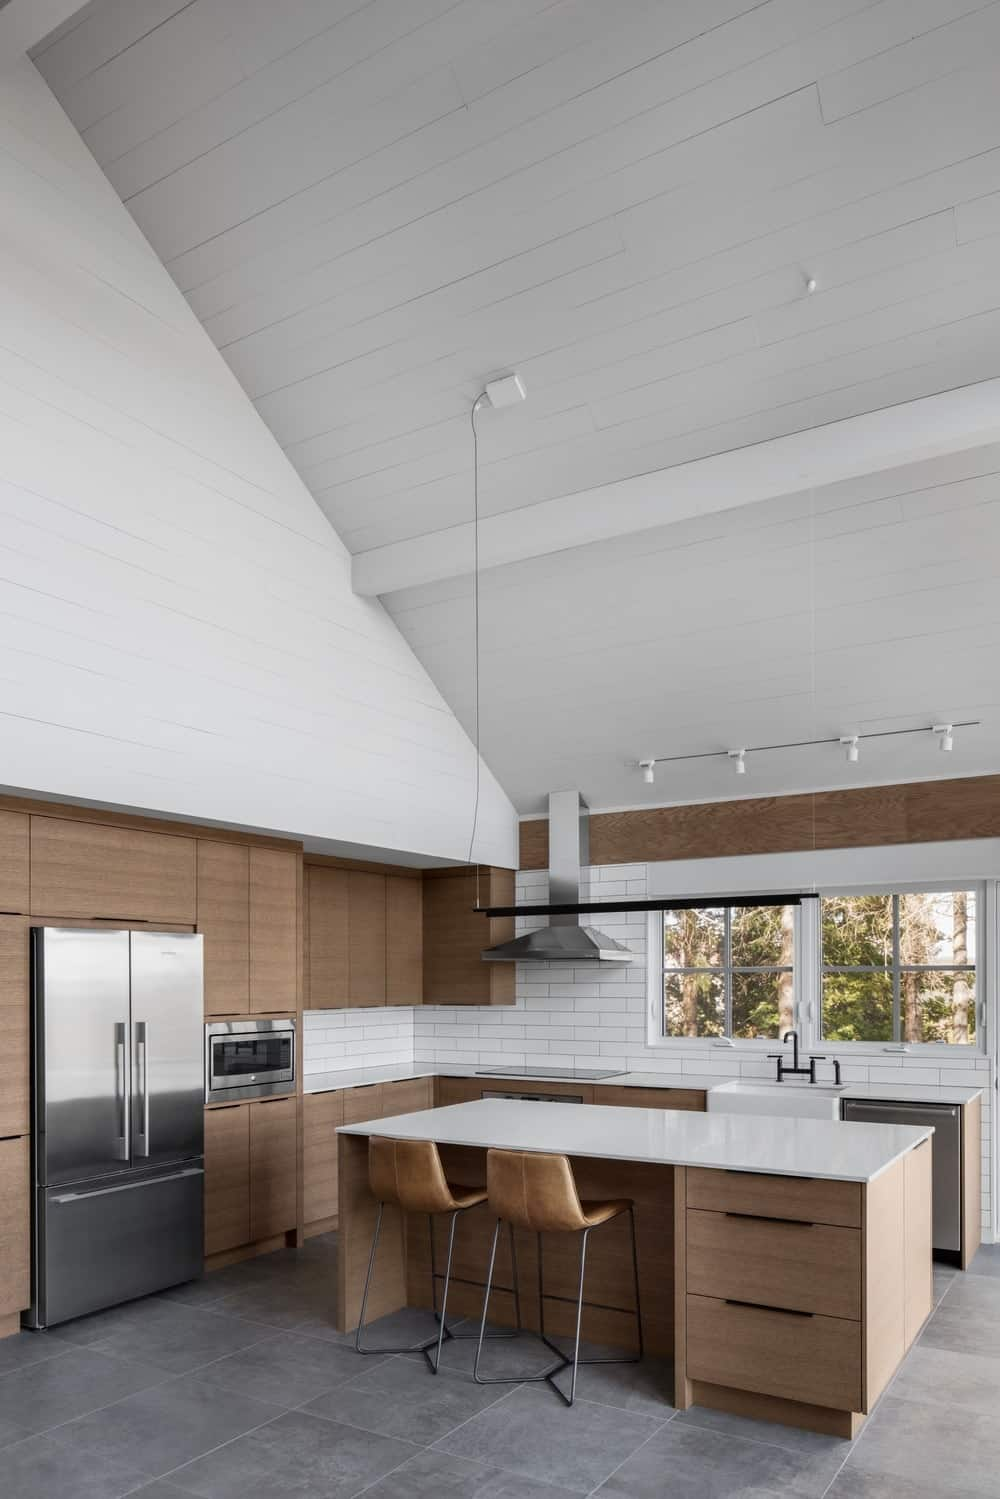 The full view of the kitchen showcasing its appliances, center island, white counters and ceiling lights.